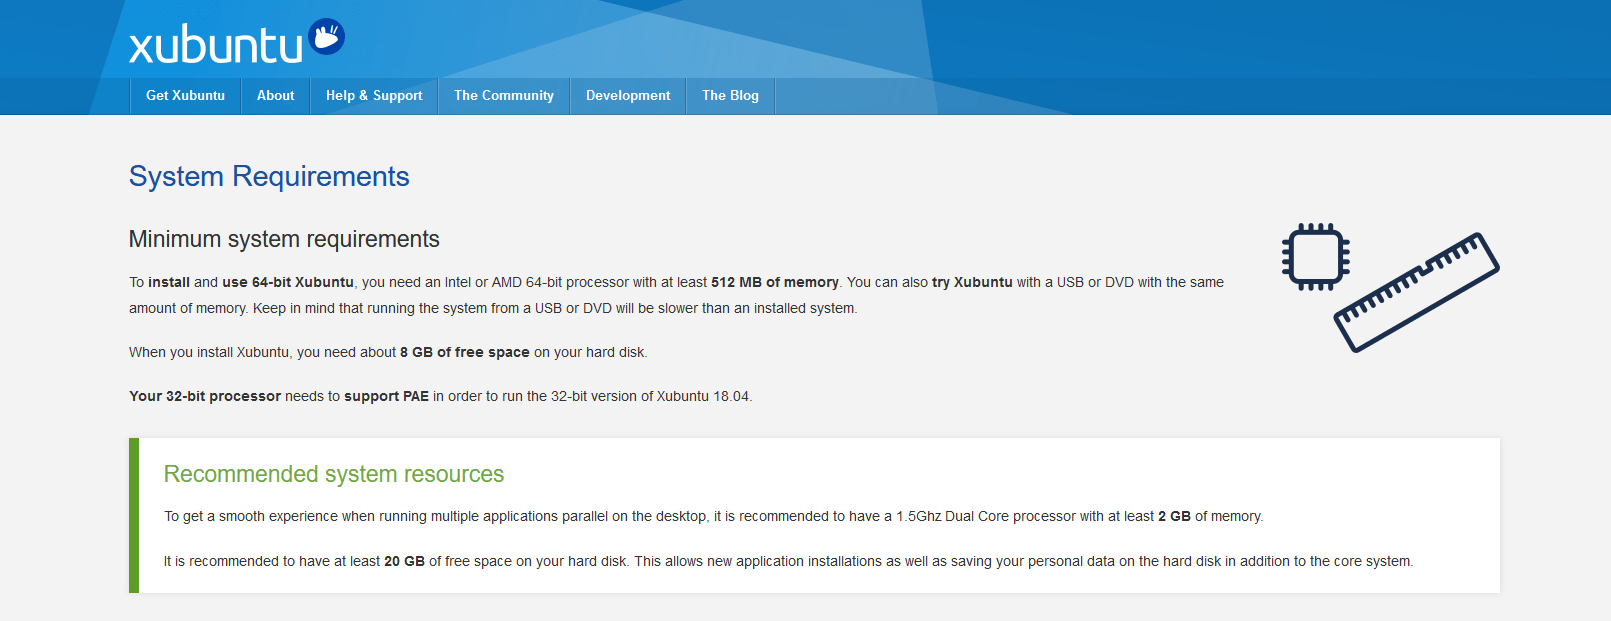 Xubuntu System Requirements